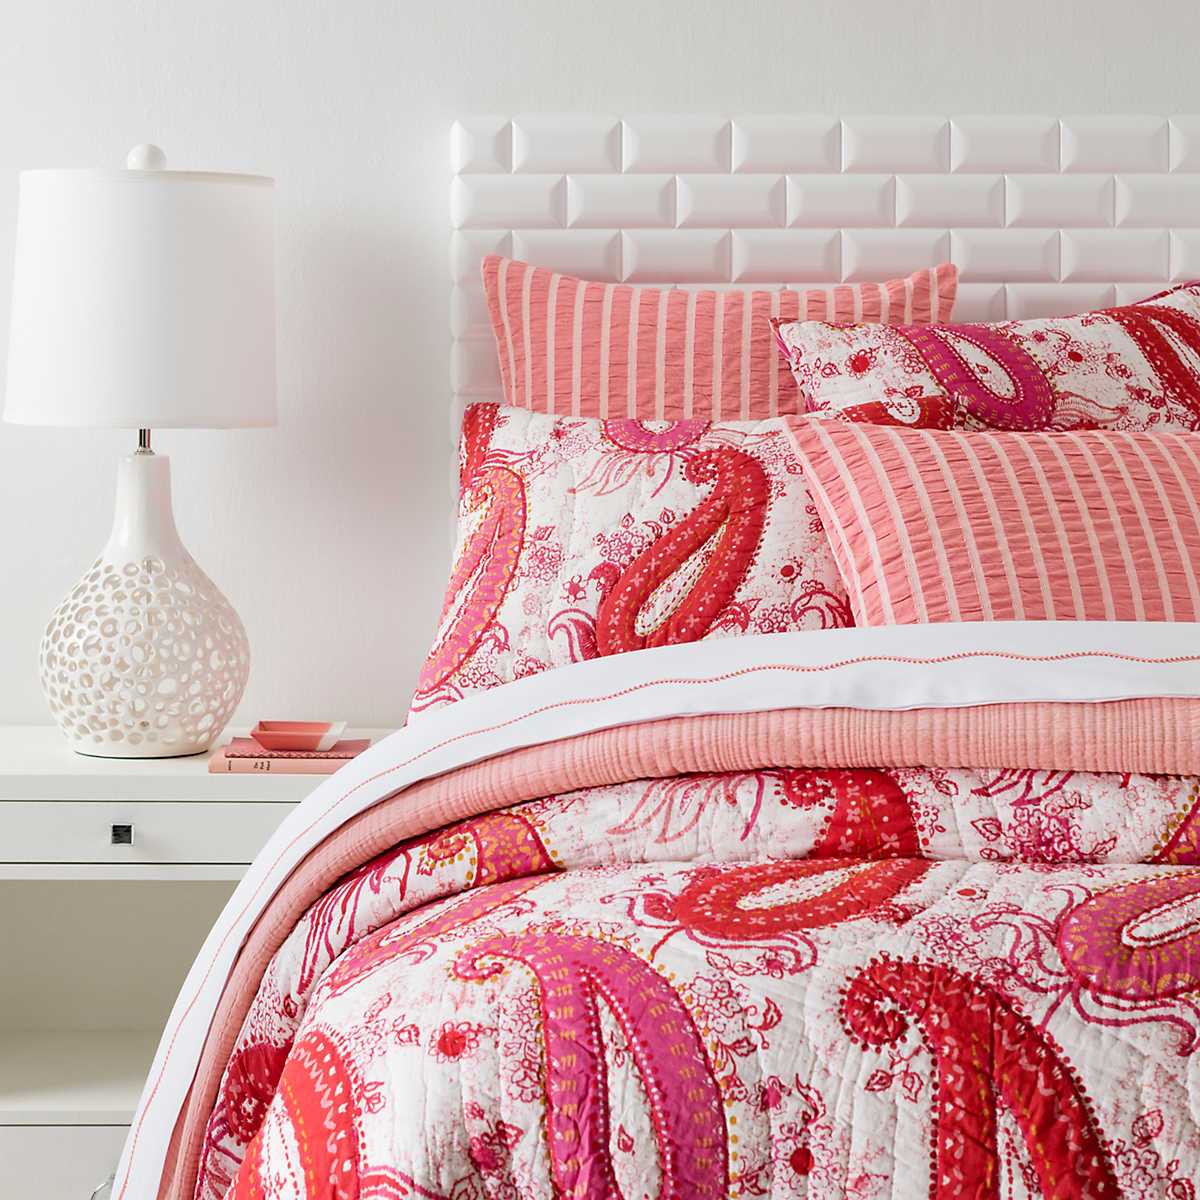 paisley colors quilt unique chic bedroom bedding nightlamps for and sidetable light with set gorgeous comforter elegant of quilts pillows comrforter